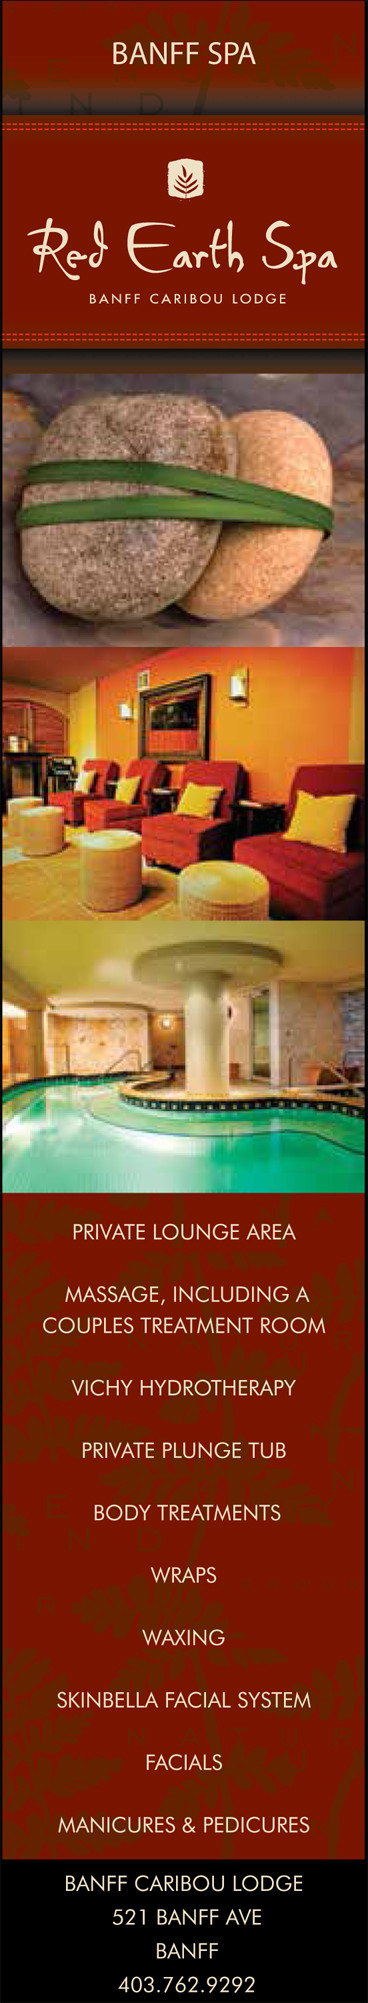 Red Earth Spa - Banff Caribou Lodge